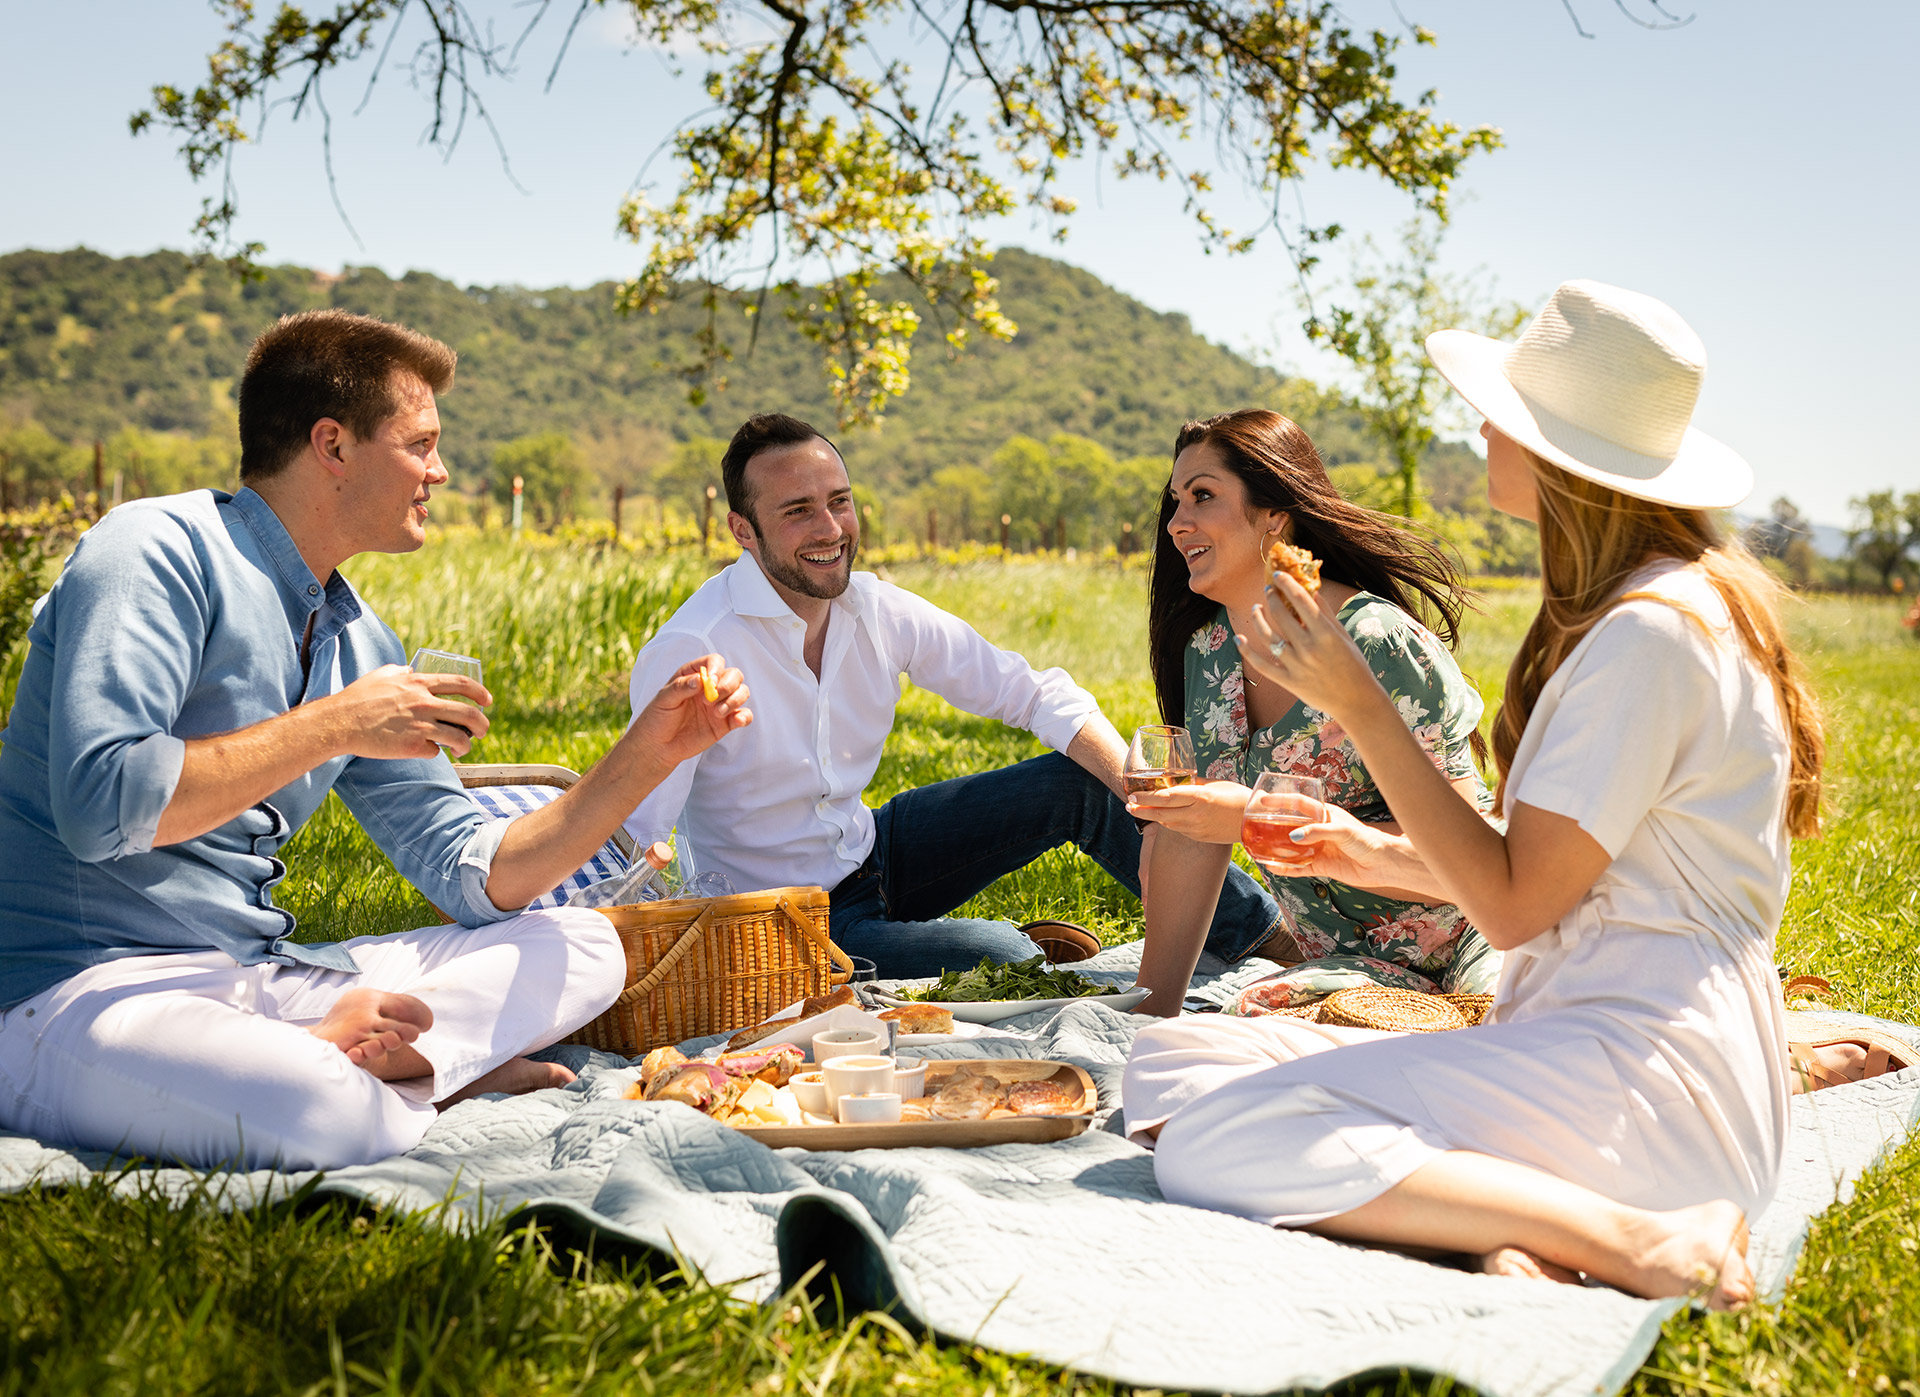 Napa Valley Picnic with Friends